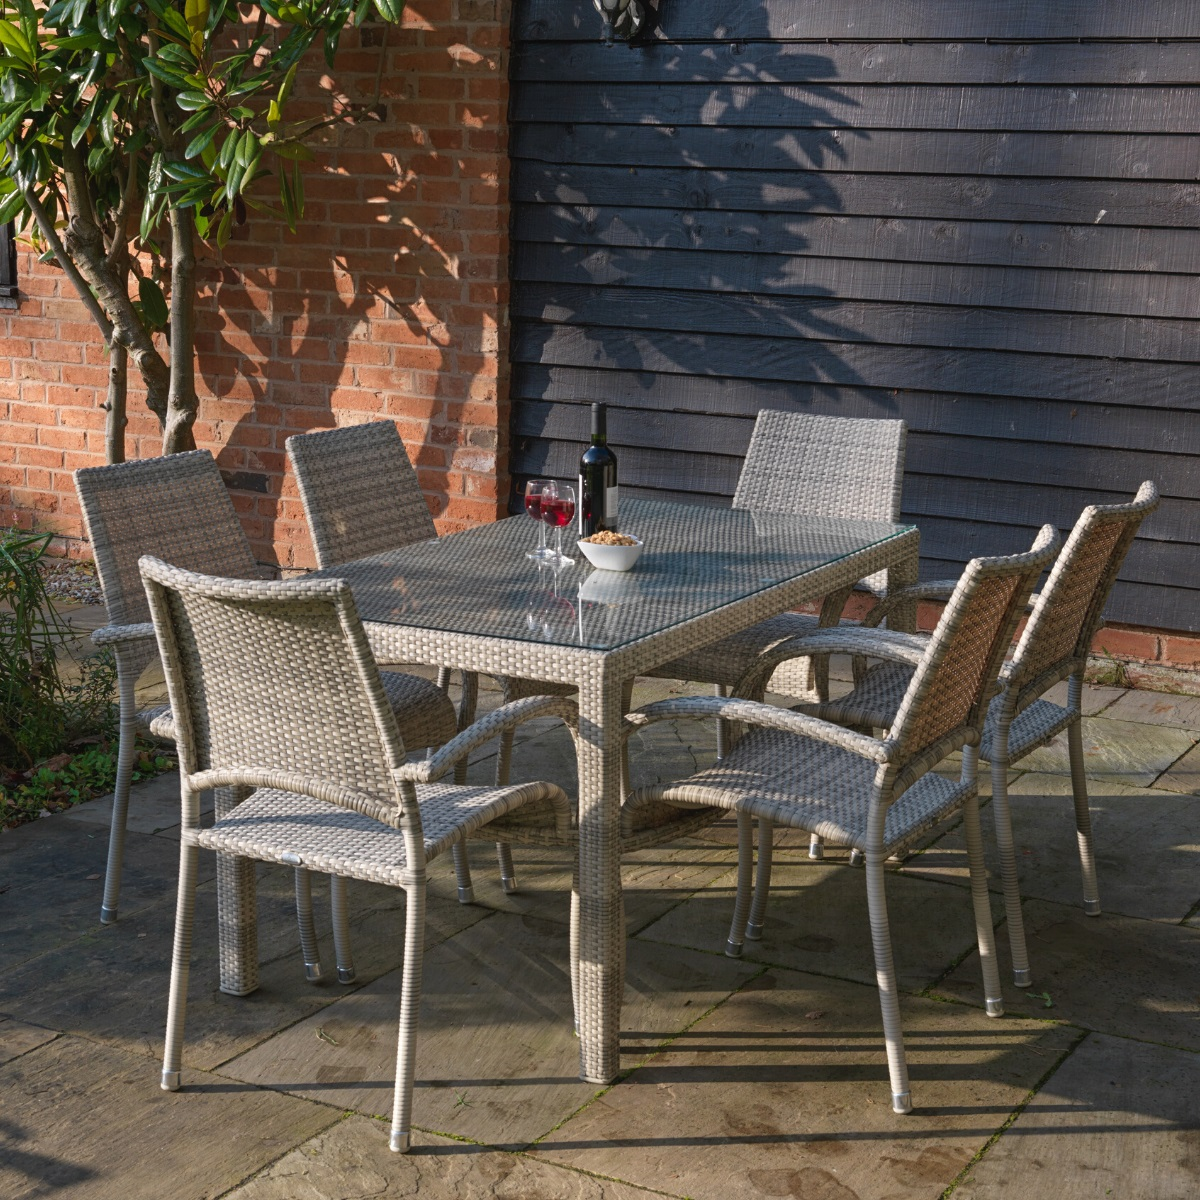 An outdoor rattan rectangular dining table and 6 matching arm chairs on a patio